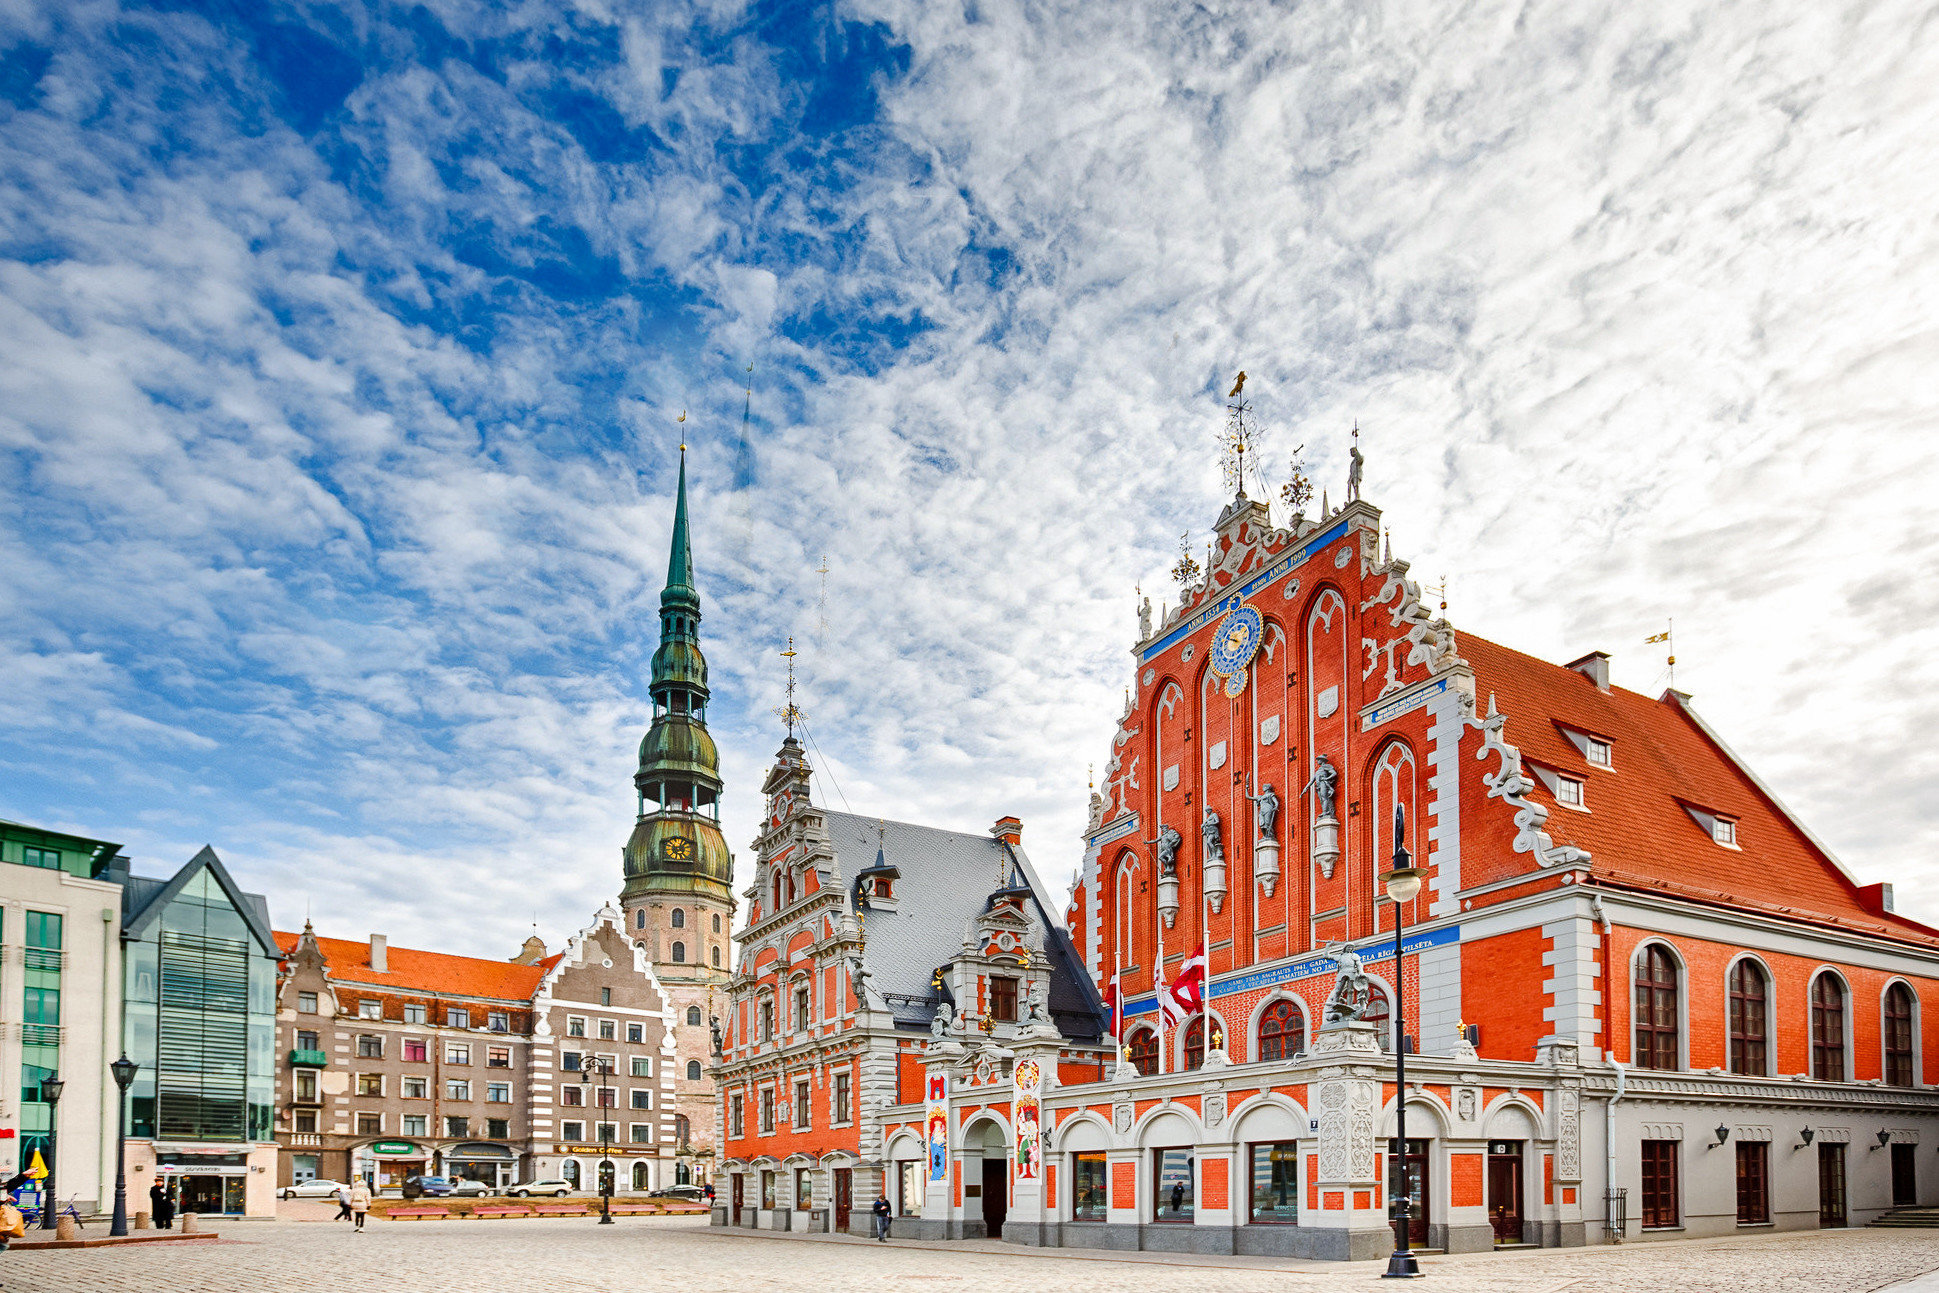 Trip Ideas sky Town landmark City building town square château metropolis facade plaza tourist attraction cloud palace tourism spire seat of local government medieval architecture steeple